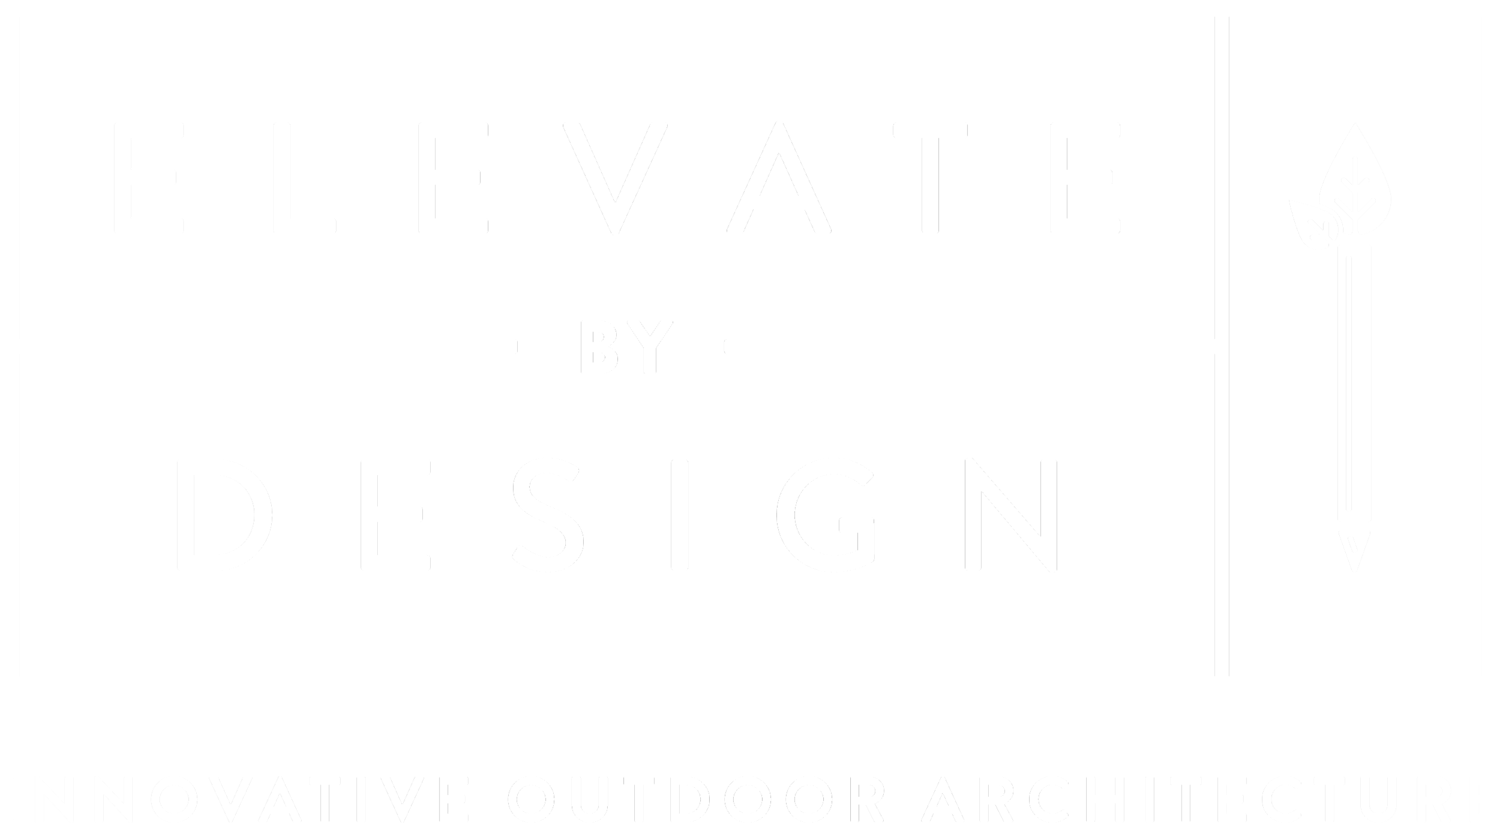 ELEVATE BY DESIGN